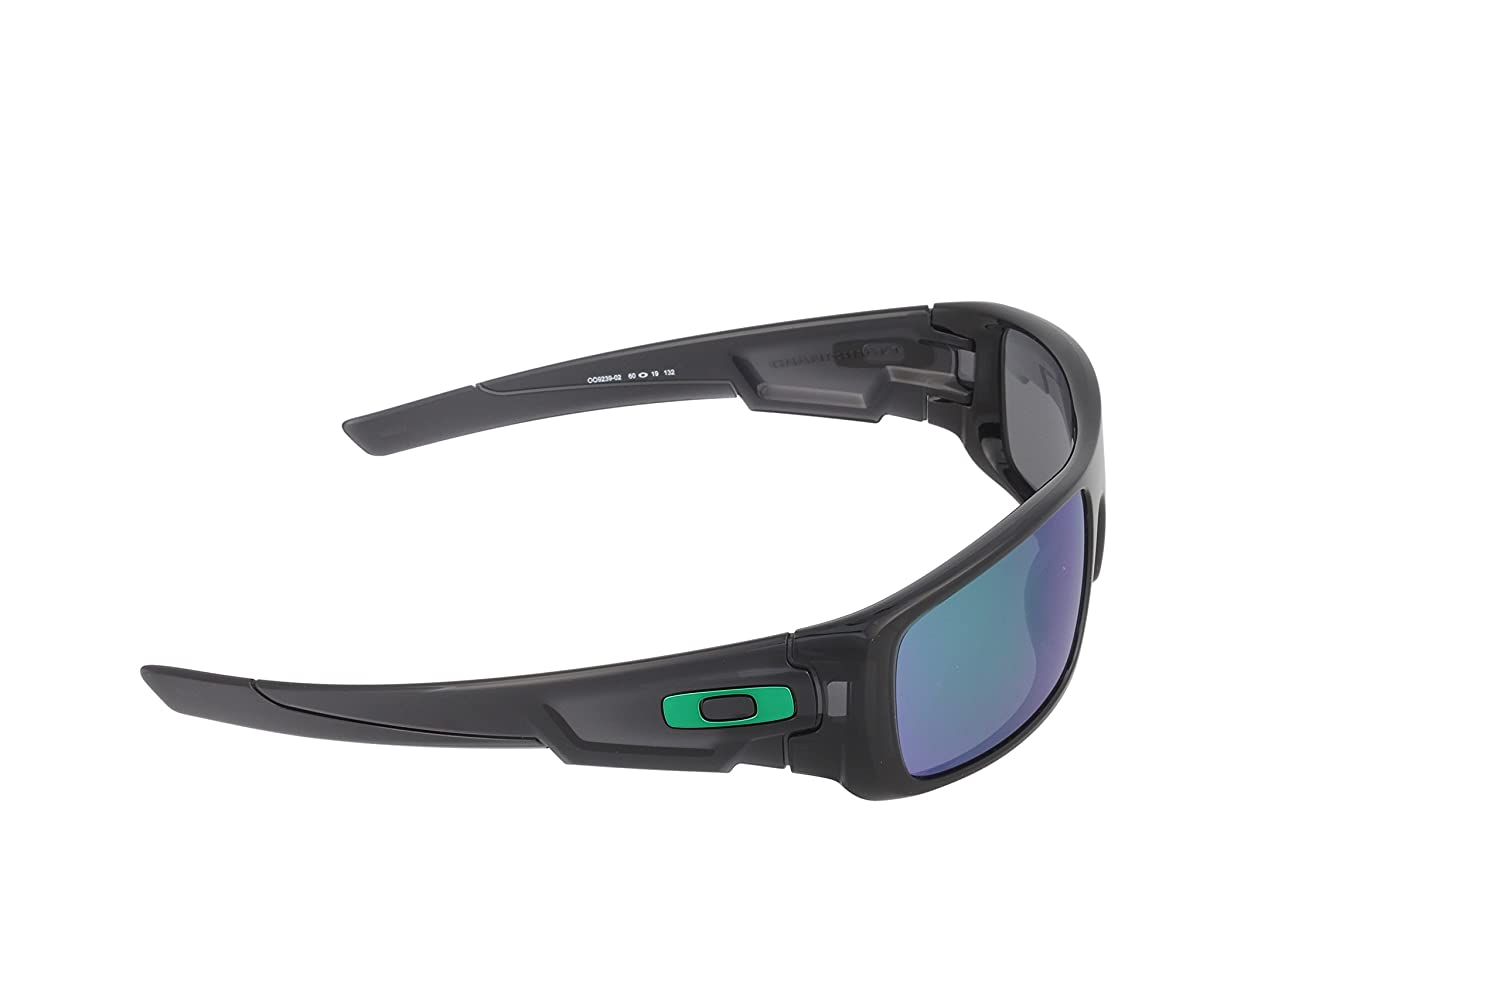 d793c4d72cb5f Oakley Crankshaft Sun Glasses Black Ink Jade Iridium Size TU  Oakley   Amazon.co.uk  Clothing